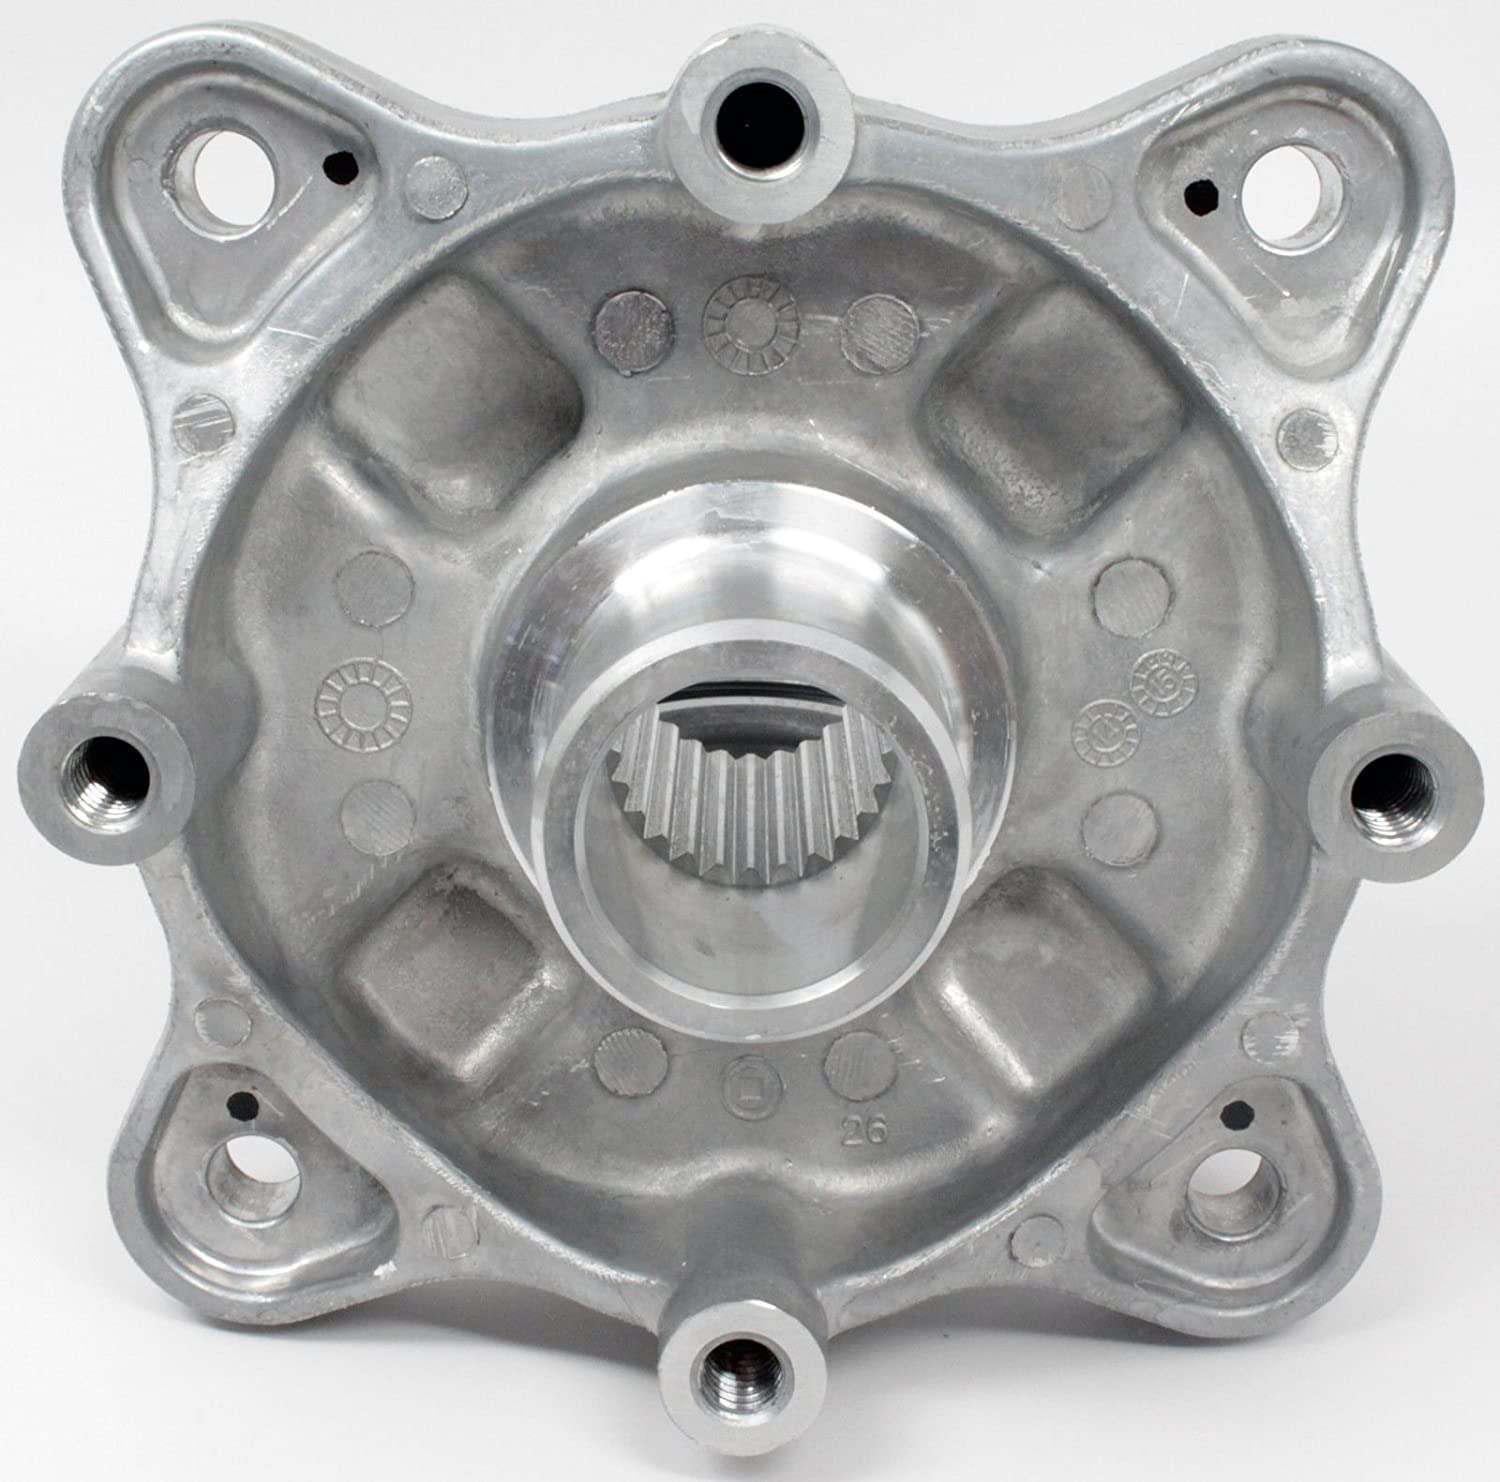 Polaris 2006-2017 Sportsman Ranger RZR 325 400 500 570 700 800 4x4 4 Crew S EFI Rear Wheel Hub 5135113 New OEM Polaris Industries Inc